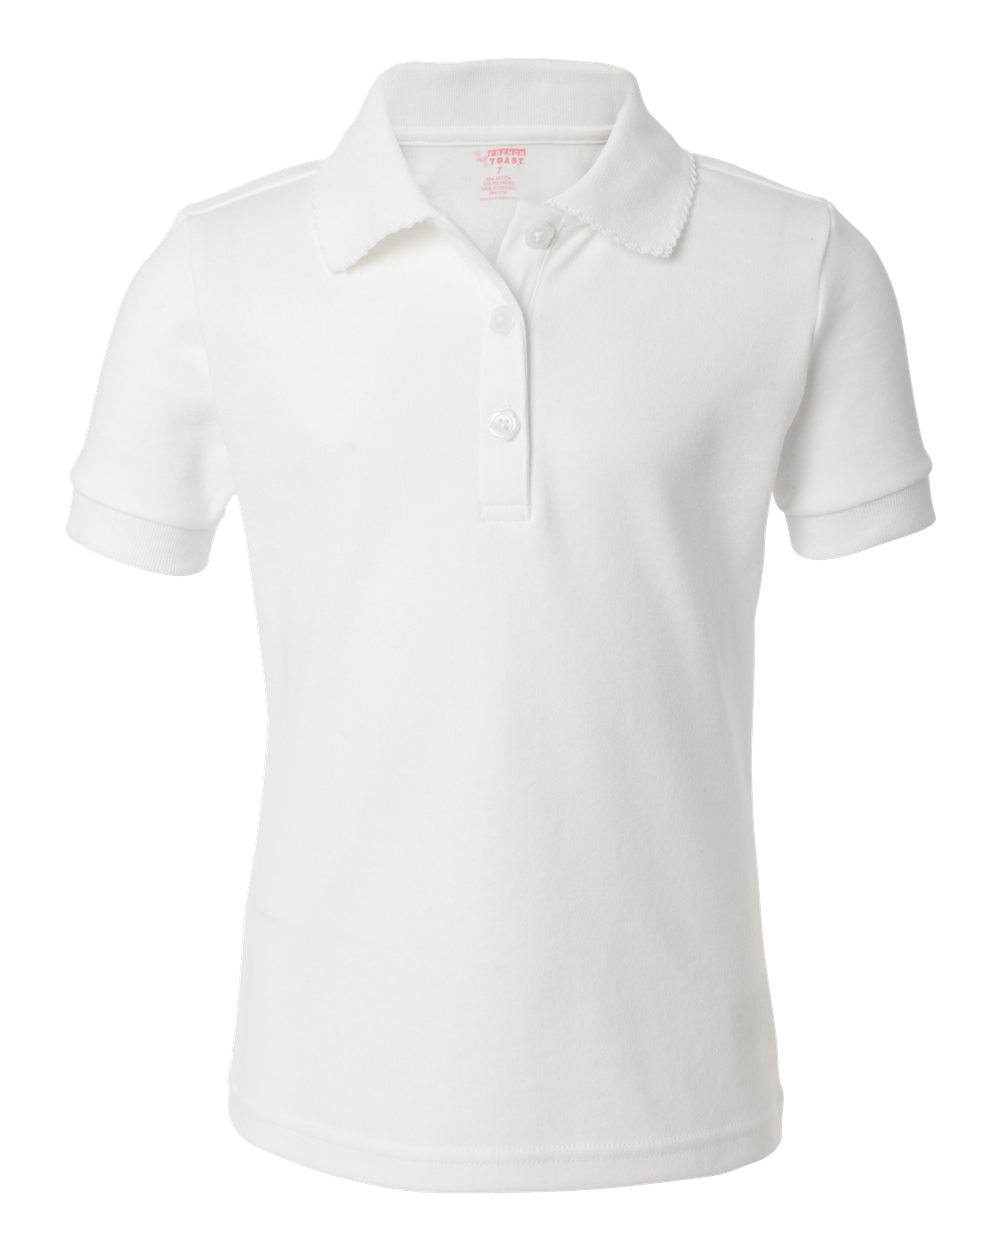 8828413d French Toast Girl's Short Sleeve Polo Shirt with Picot Collar – Item ...